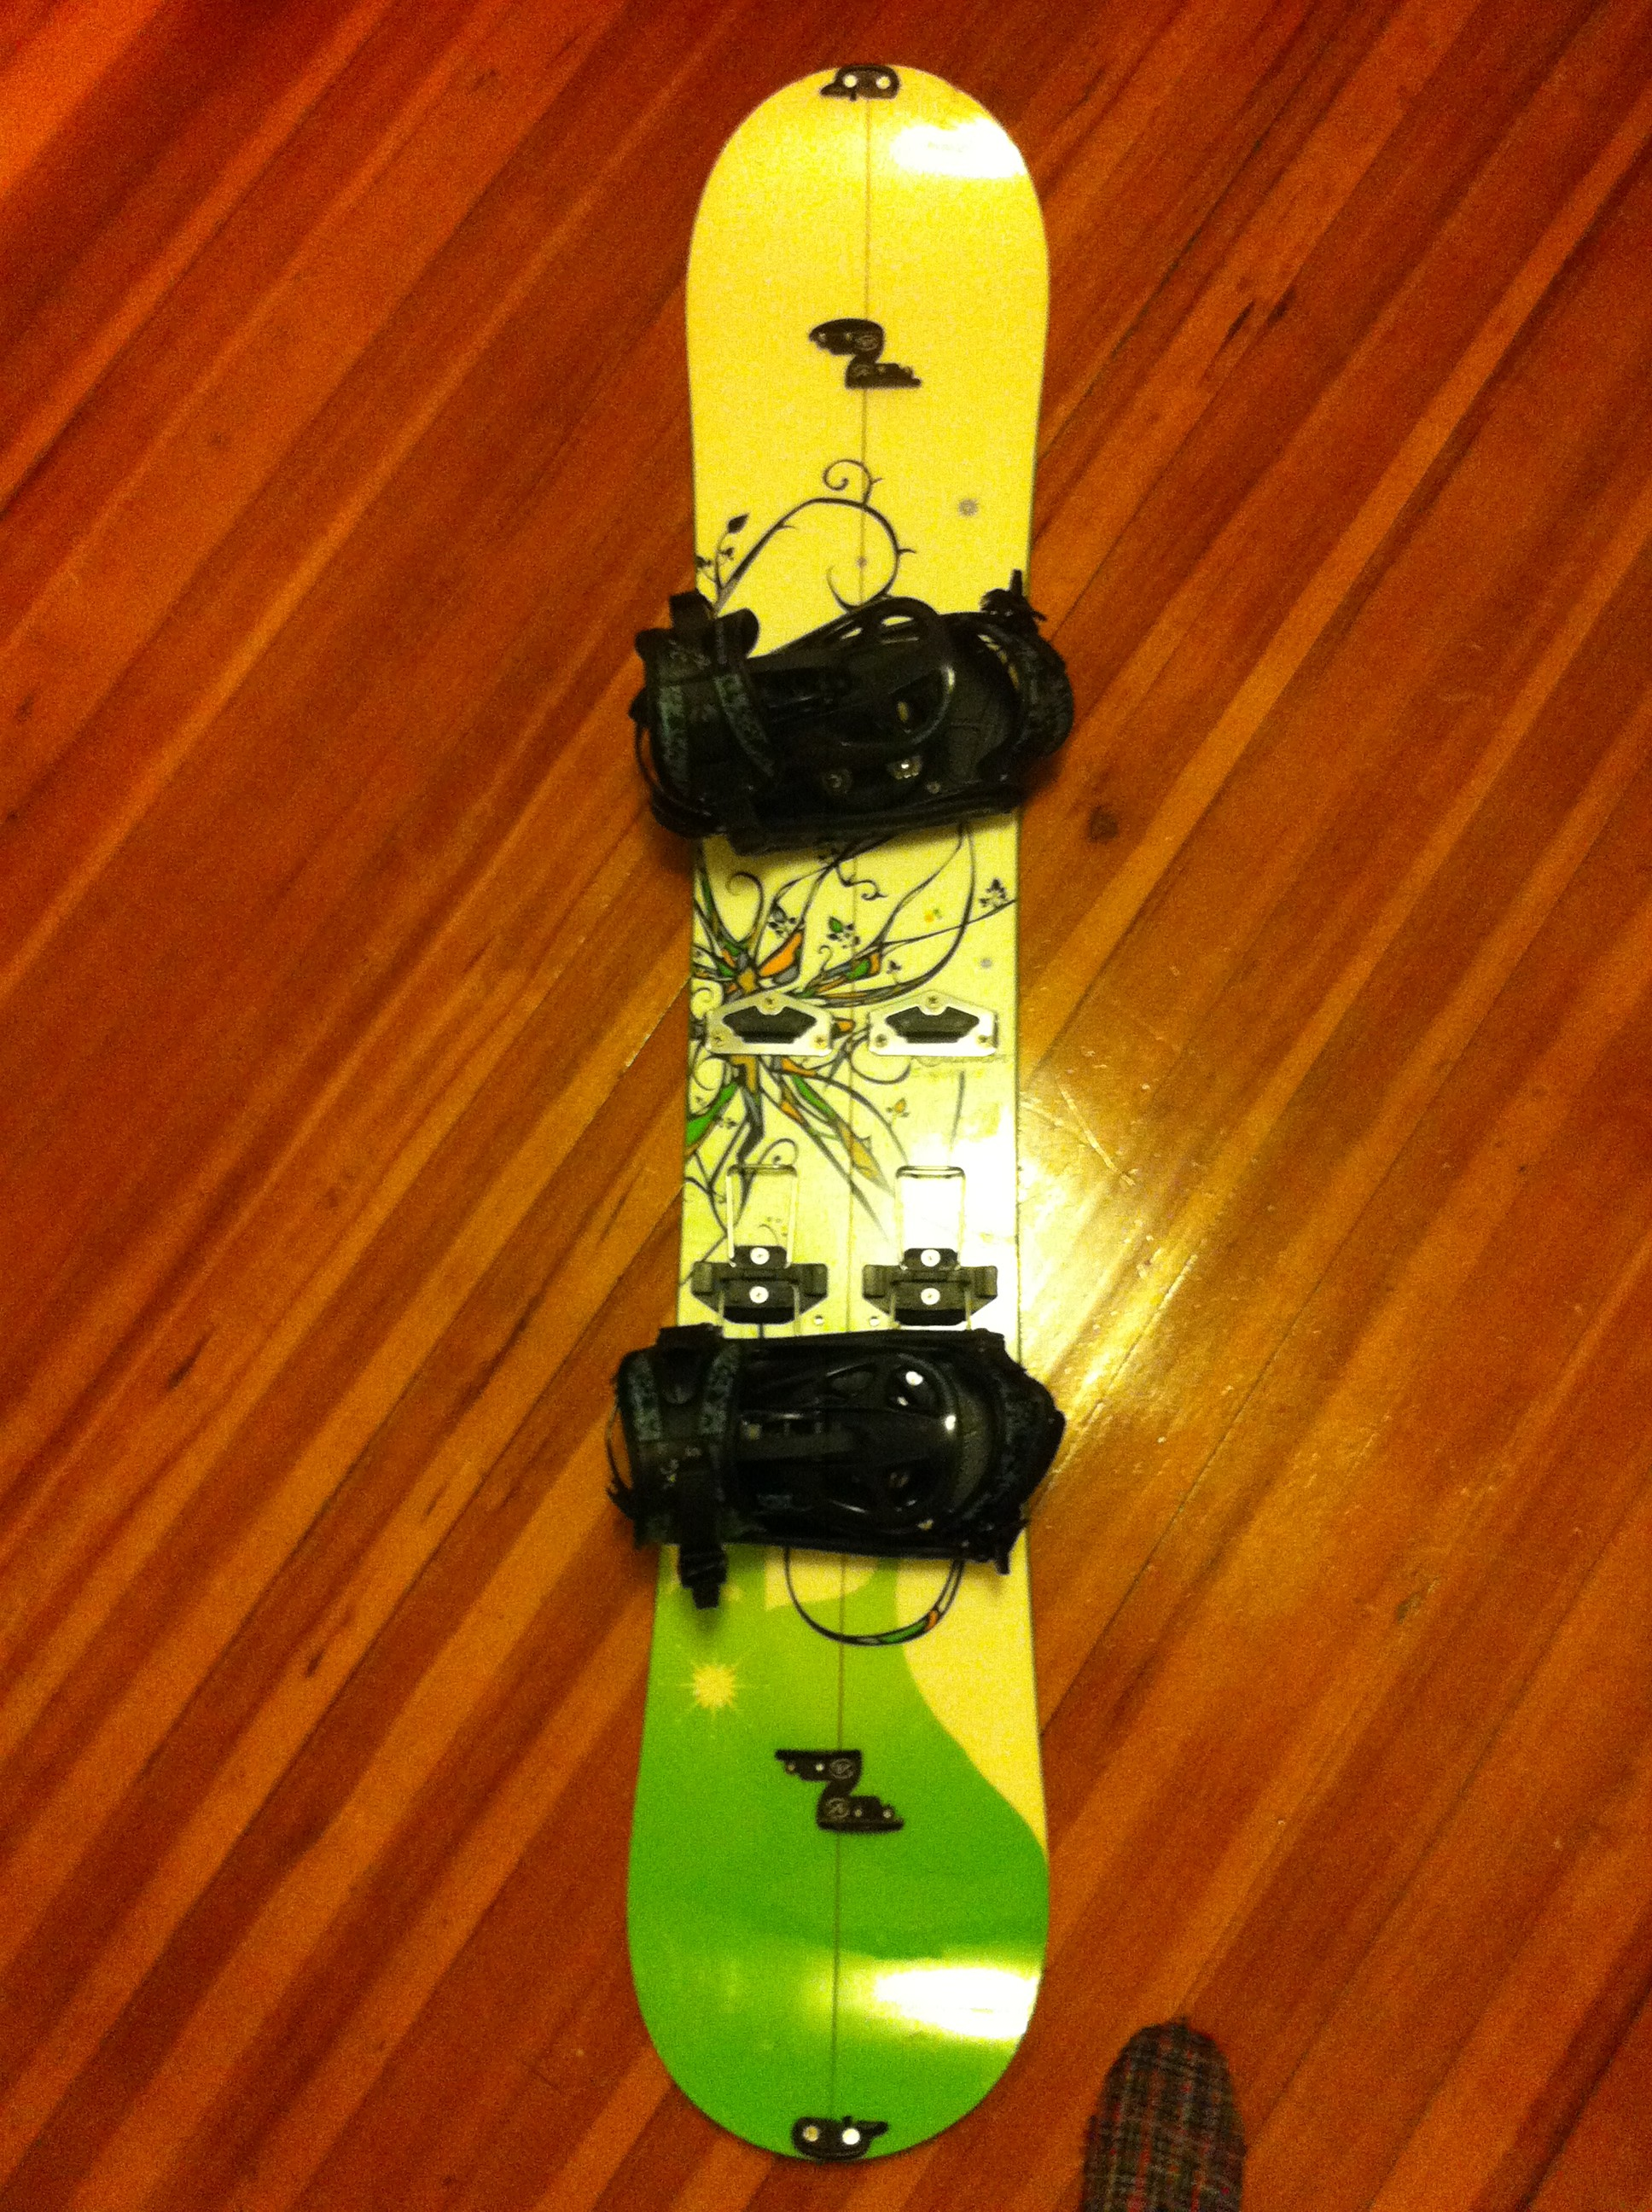 Splitboard in the snowboard position.